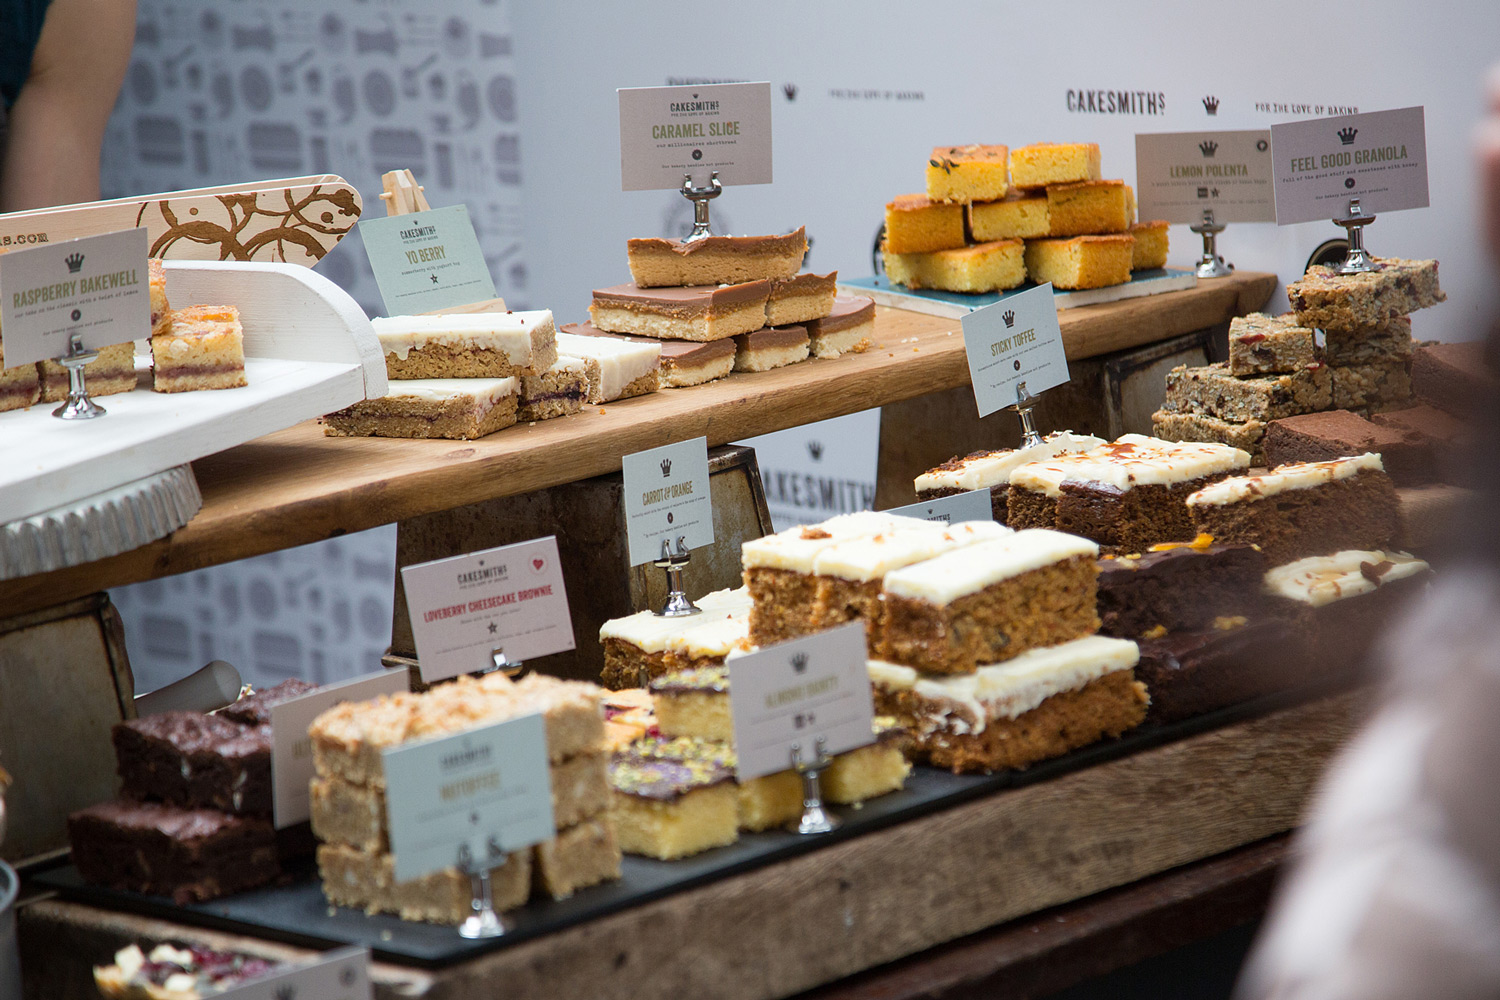 cakesmiths-show-exhibition-stand-cake-display-designs-by-get-it-sorted.jpg